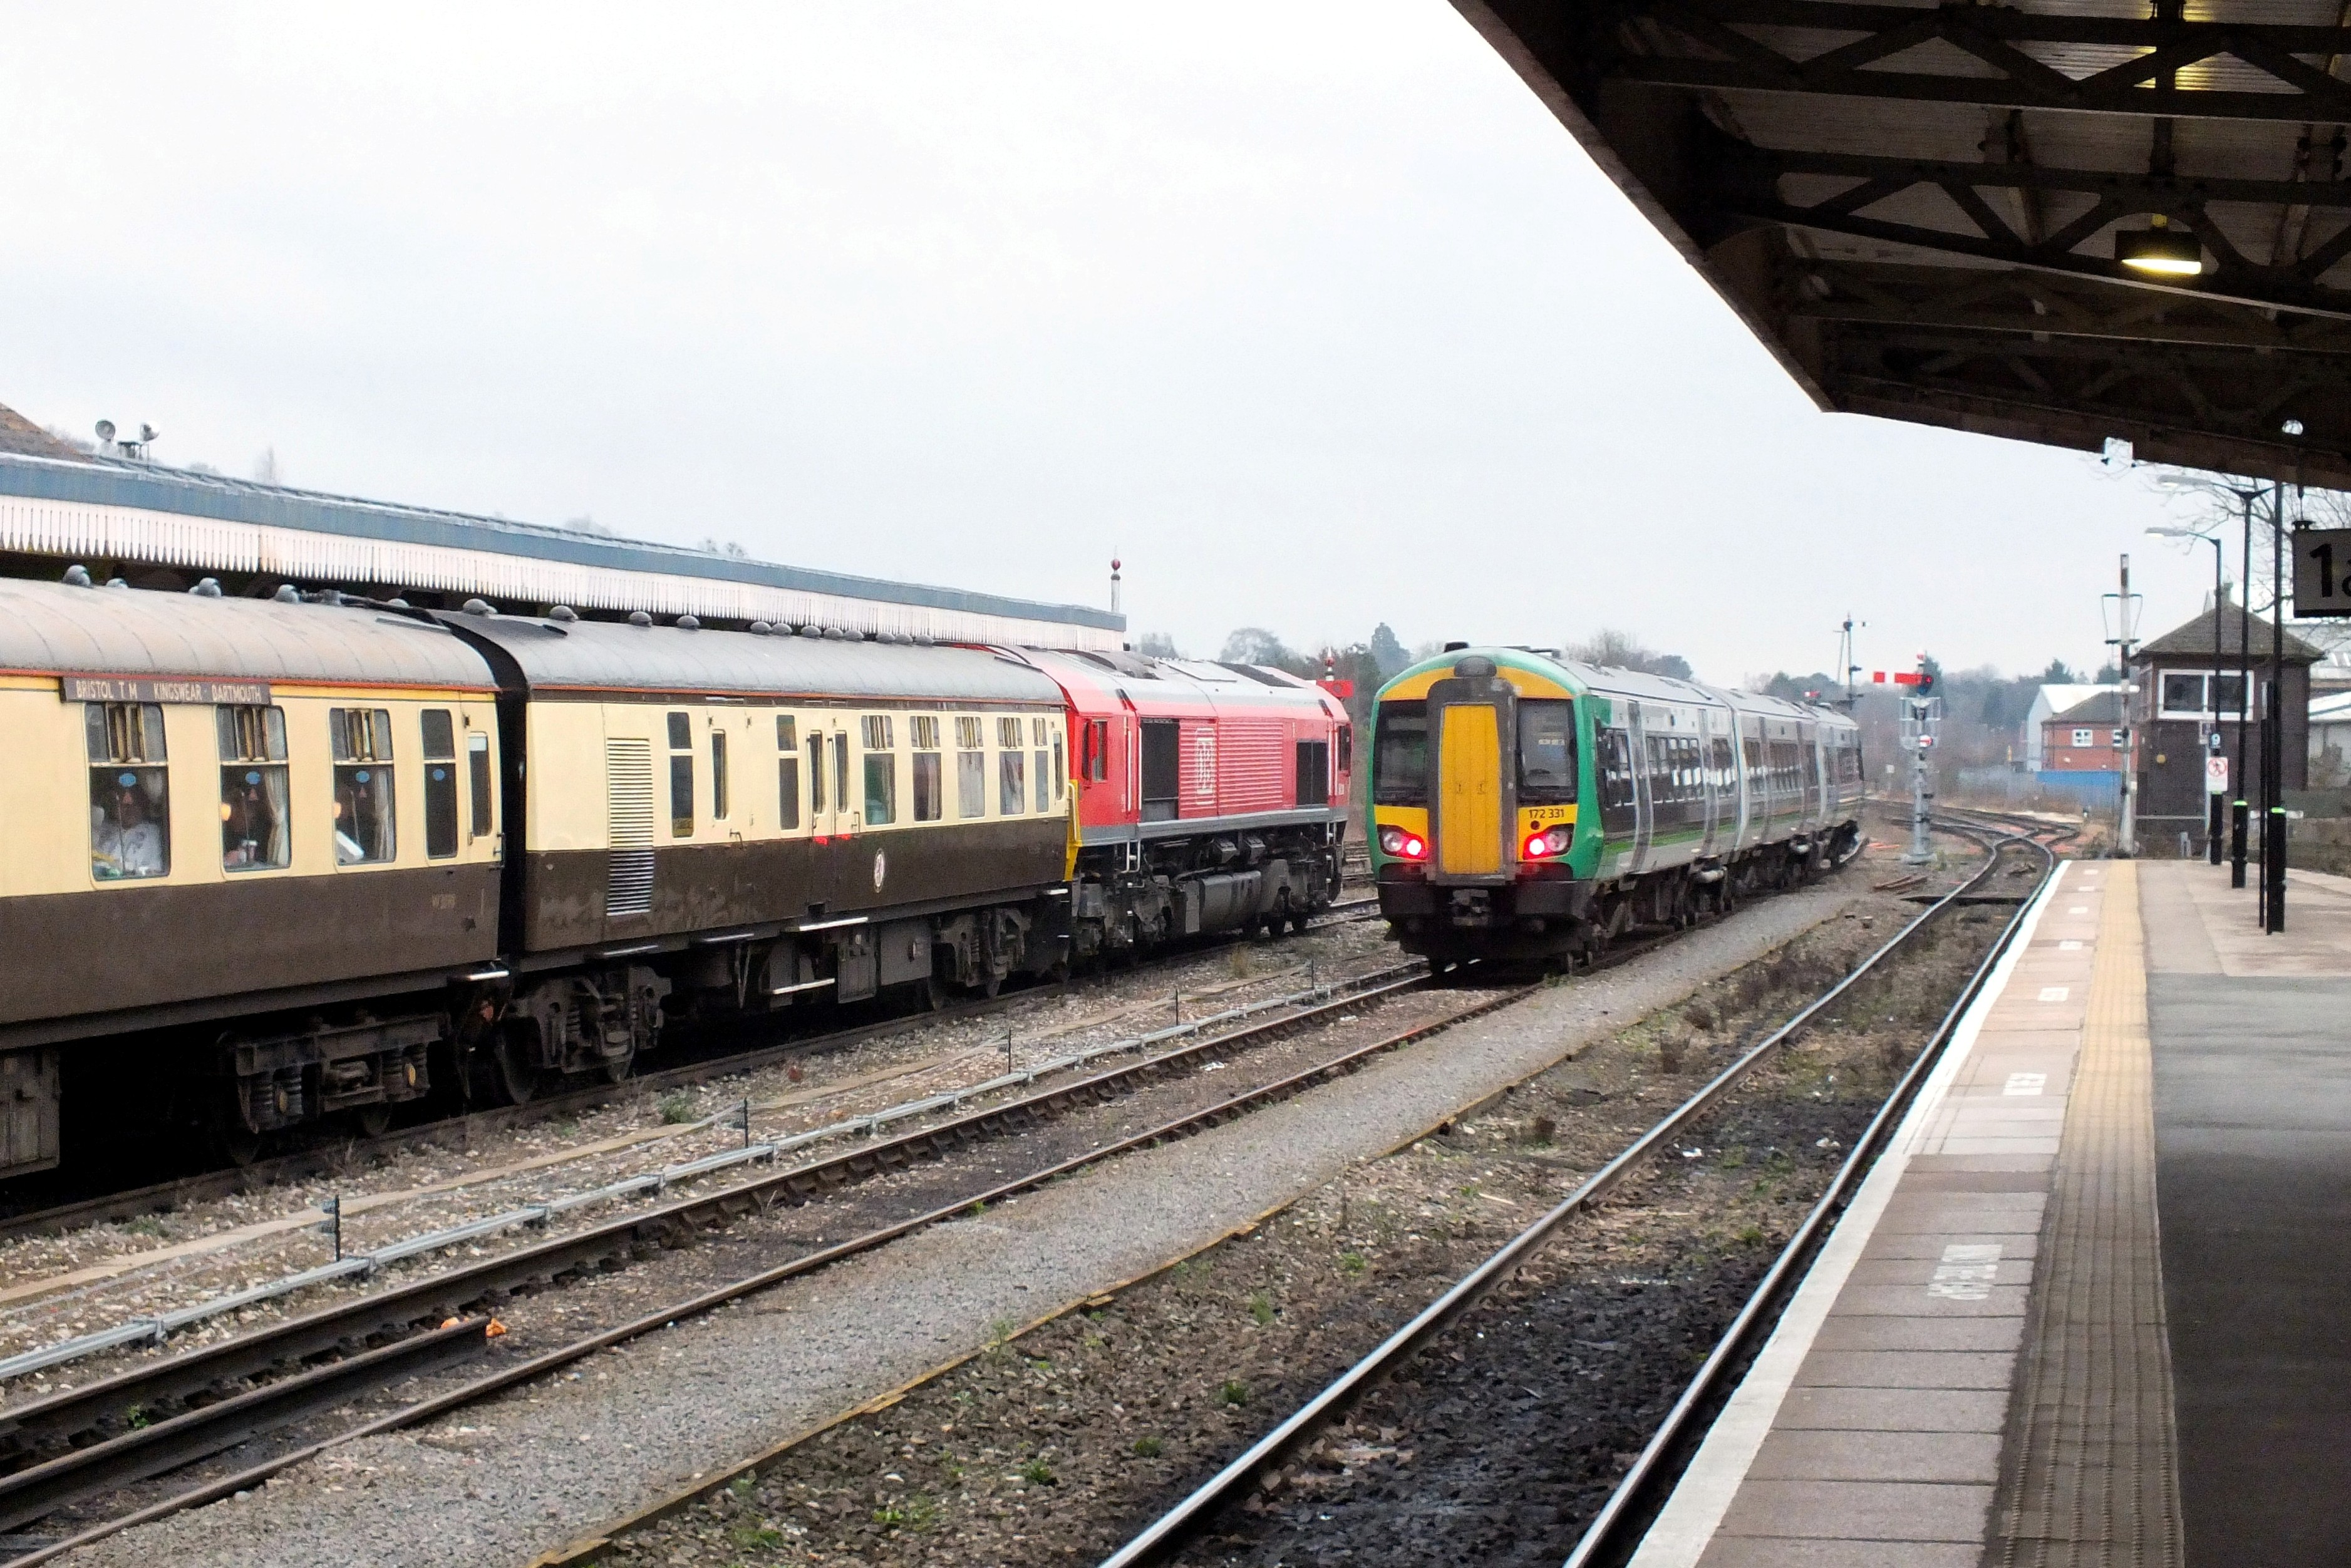 13 January 2018 Shrub Hill 003.jpg